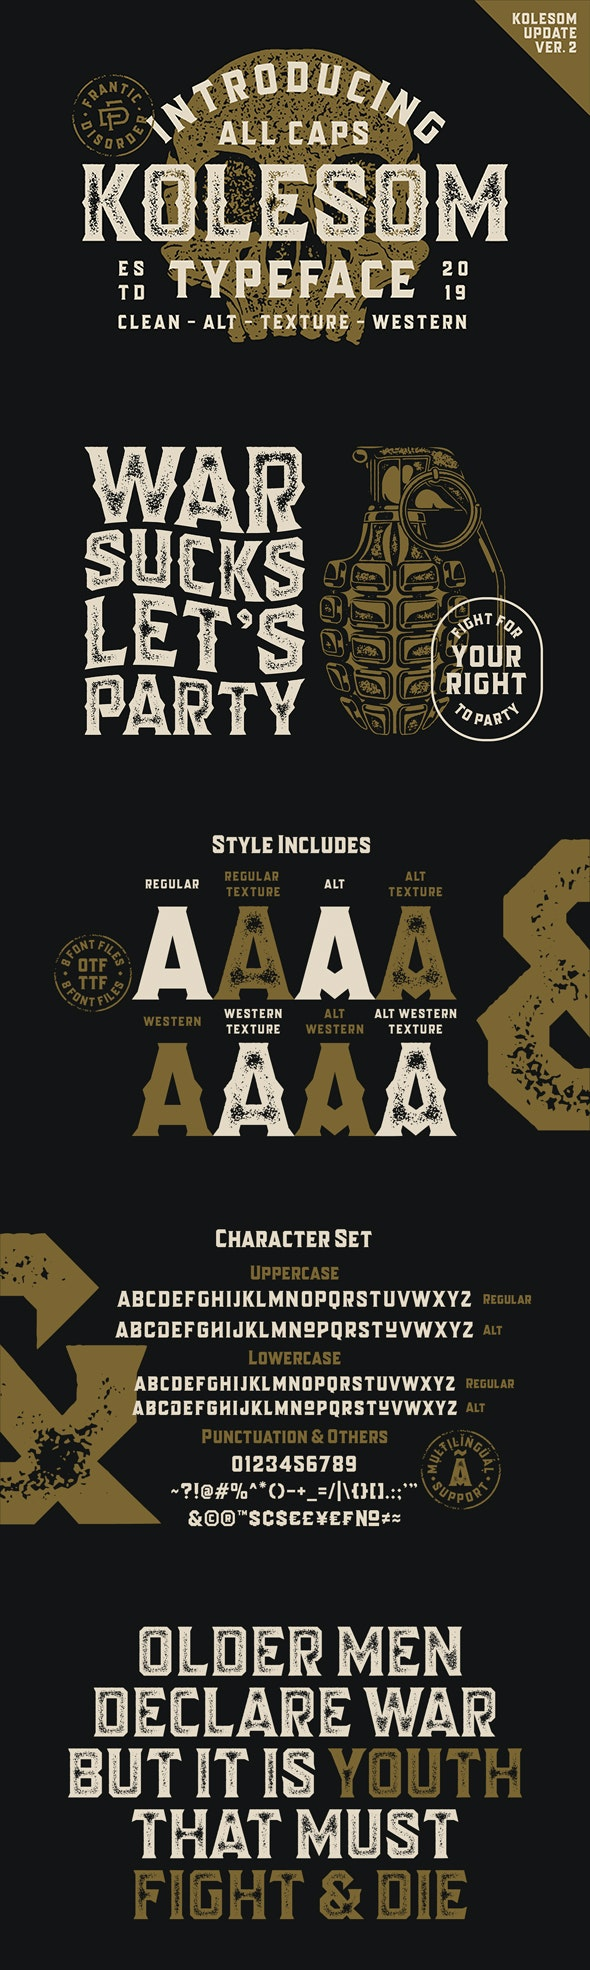 Kolesom Typeface - Cool Fonts